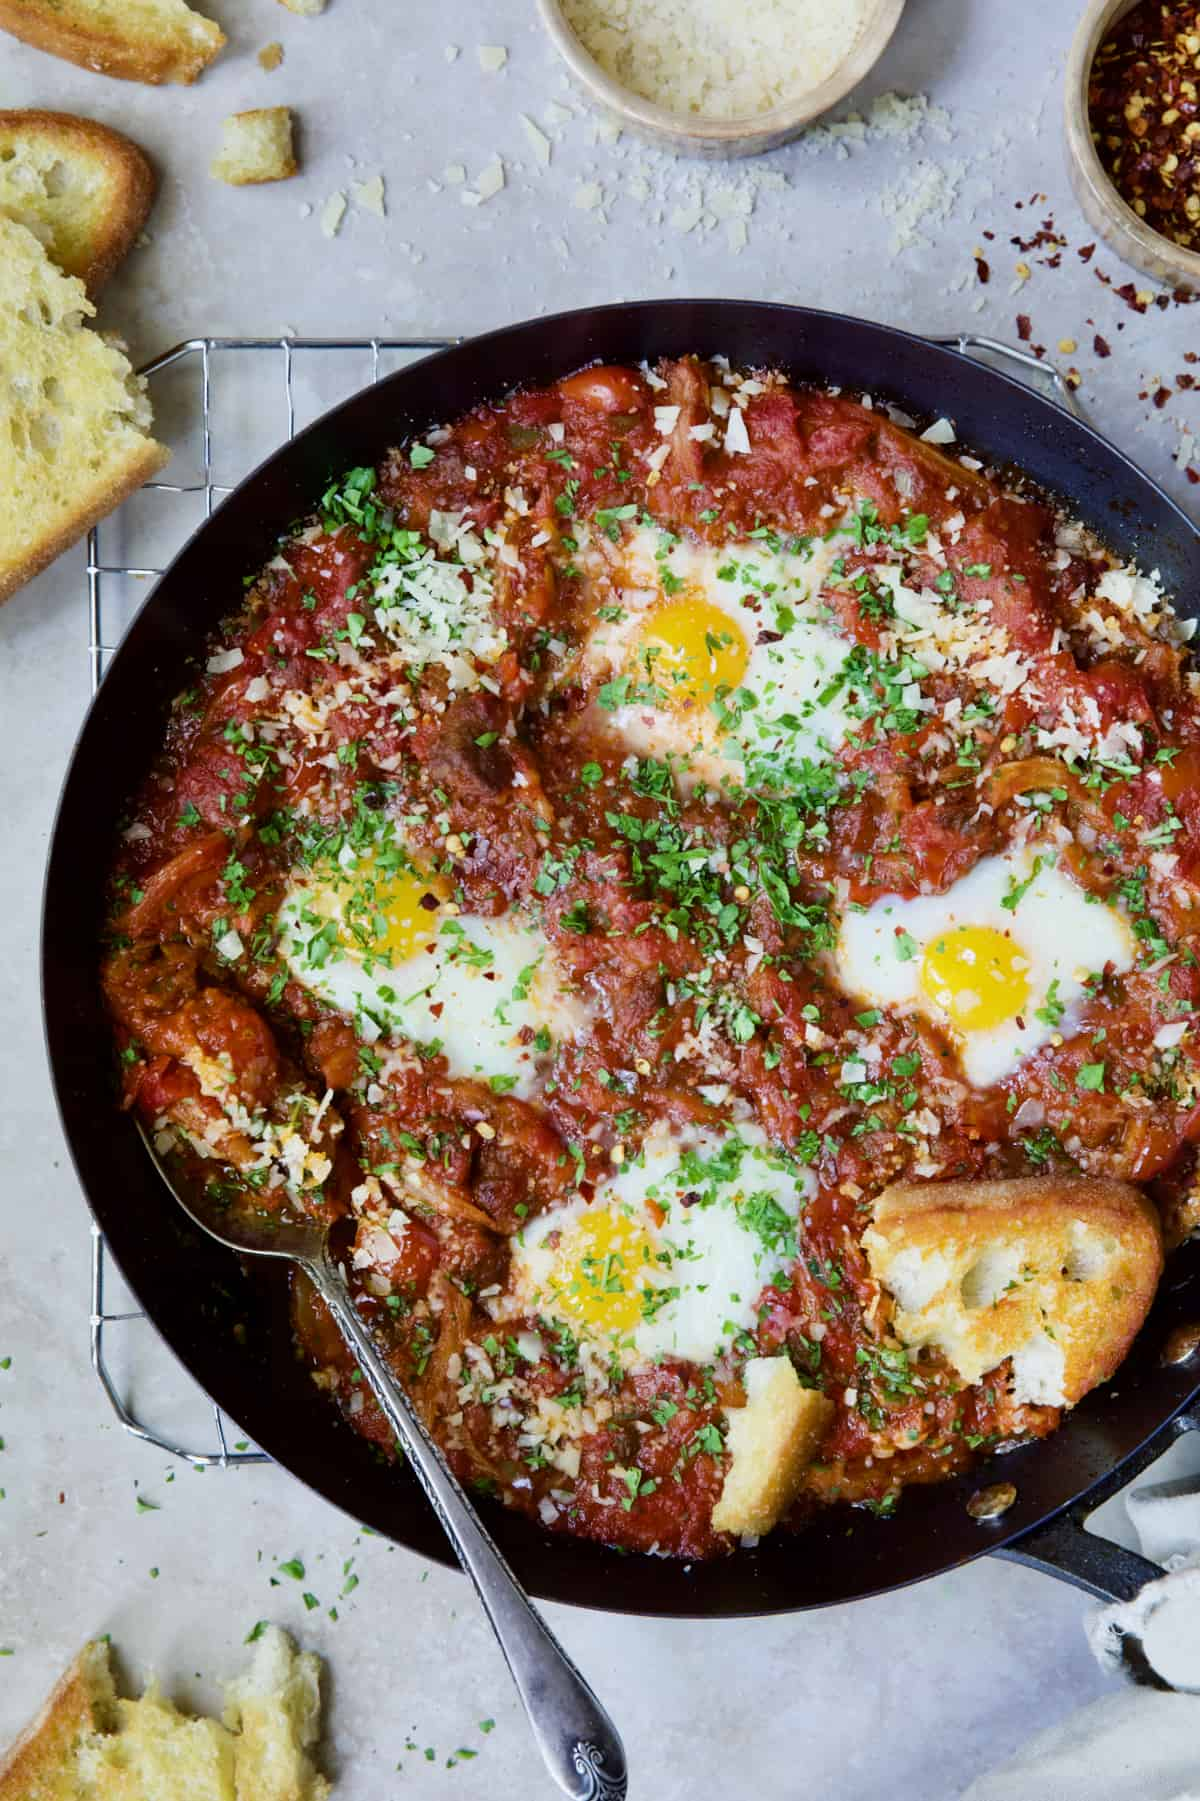 Eggs in Purgatory with Italian Sausage in skillet with serving spoon.